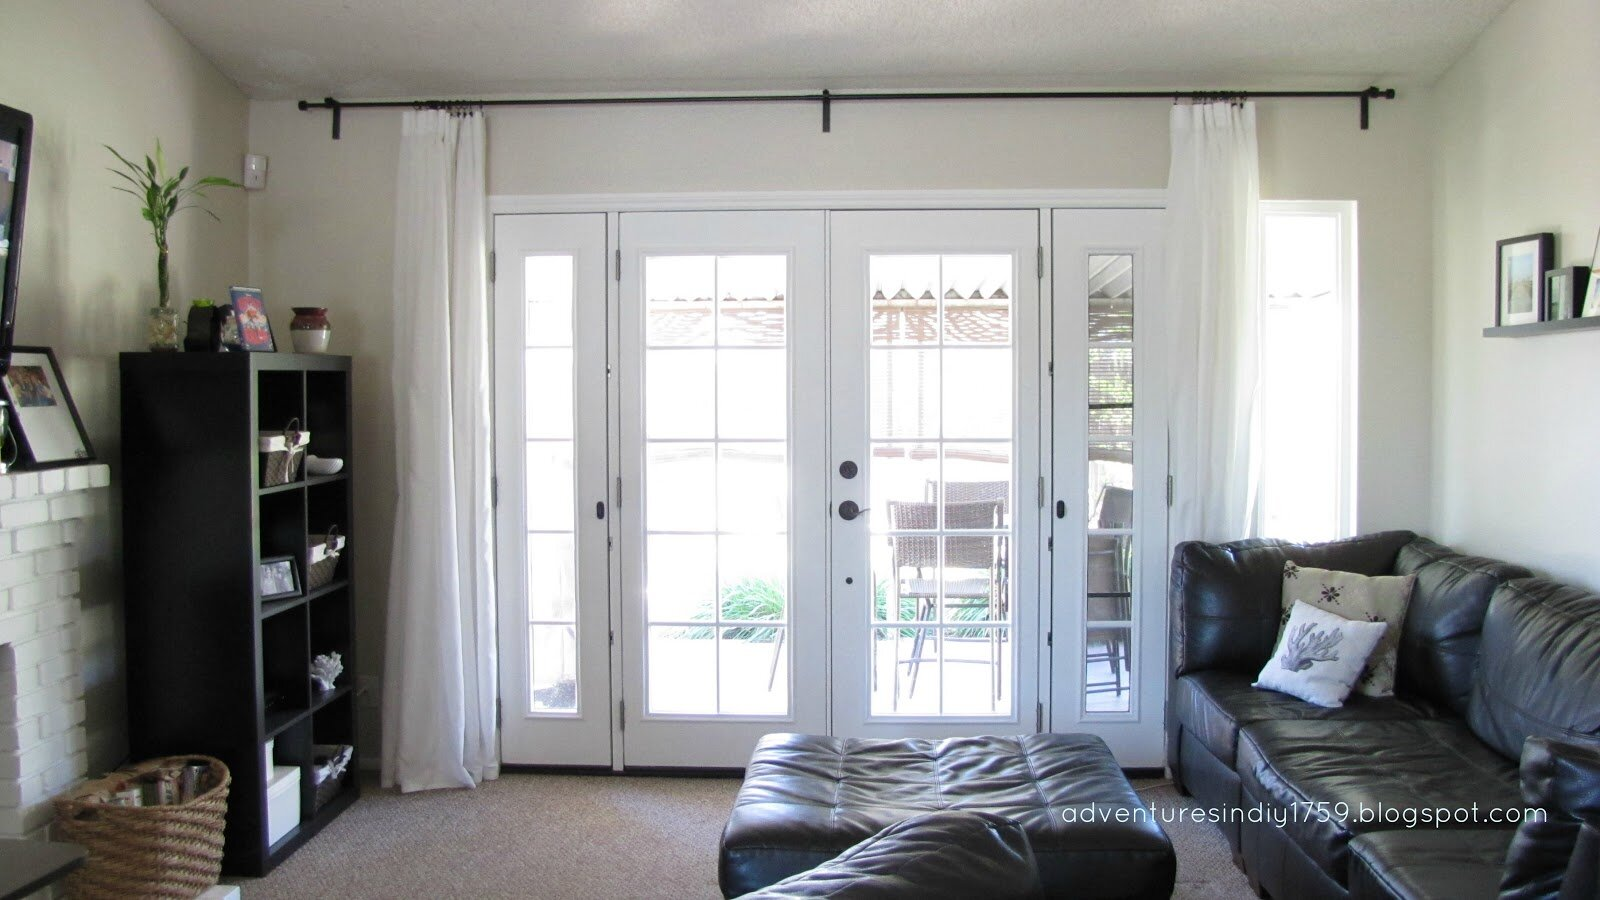 Living Room Valances curtain: kitchen window valances | scarf valances for living room